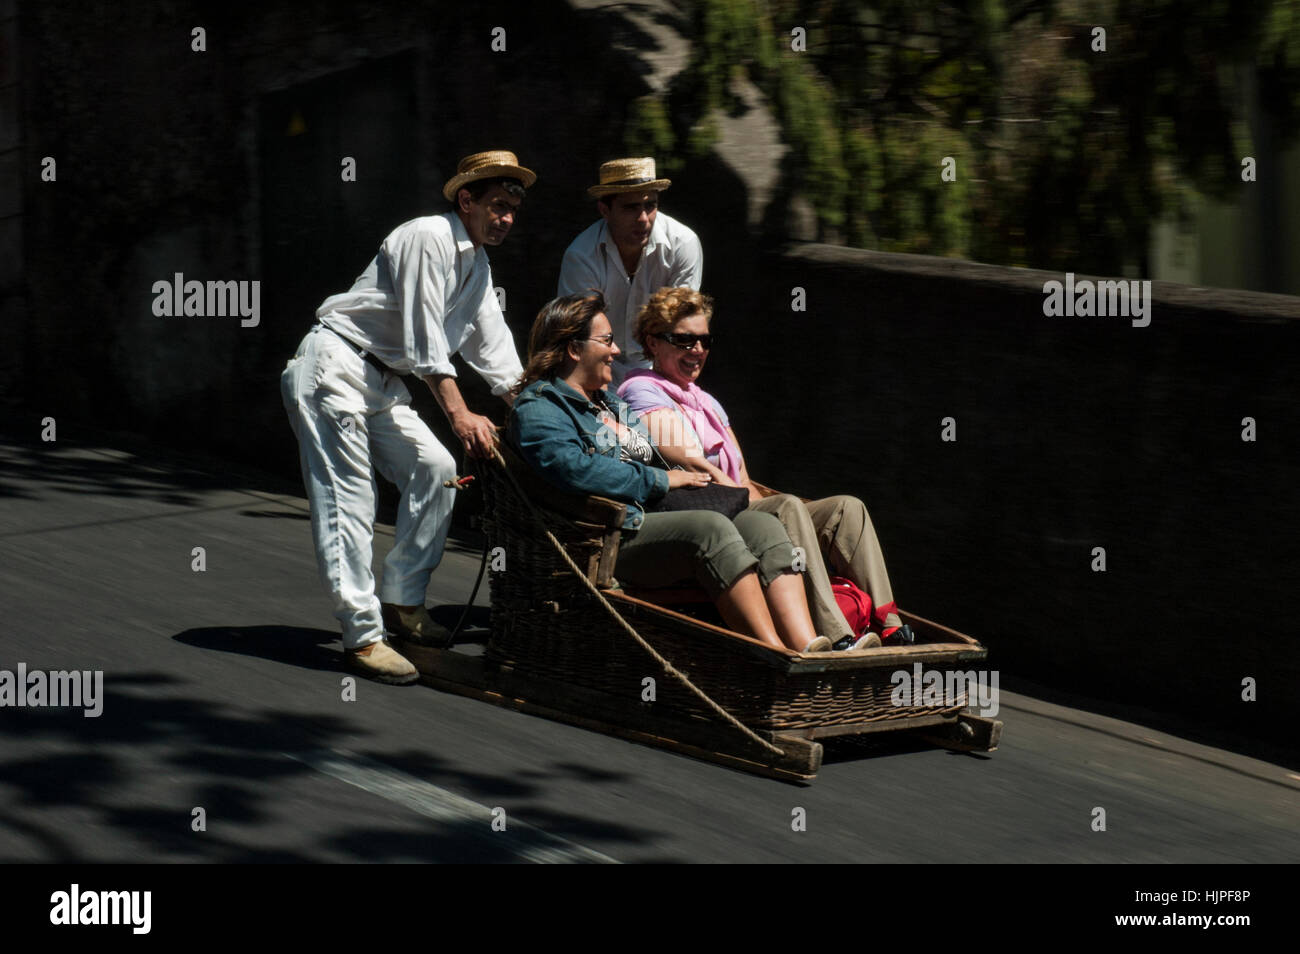 Tourists  being pushed in wicker toboggan Monte. Funchal, Madeira, Portugal - Stock Image